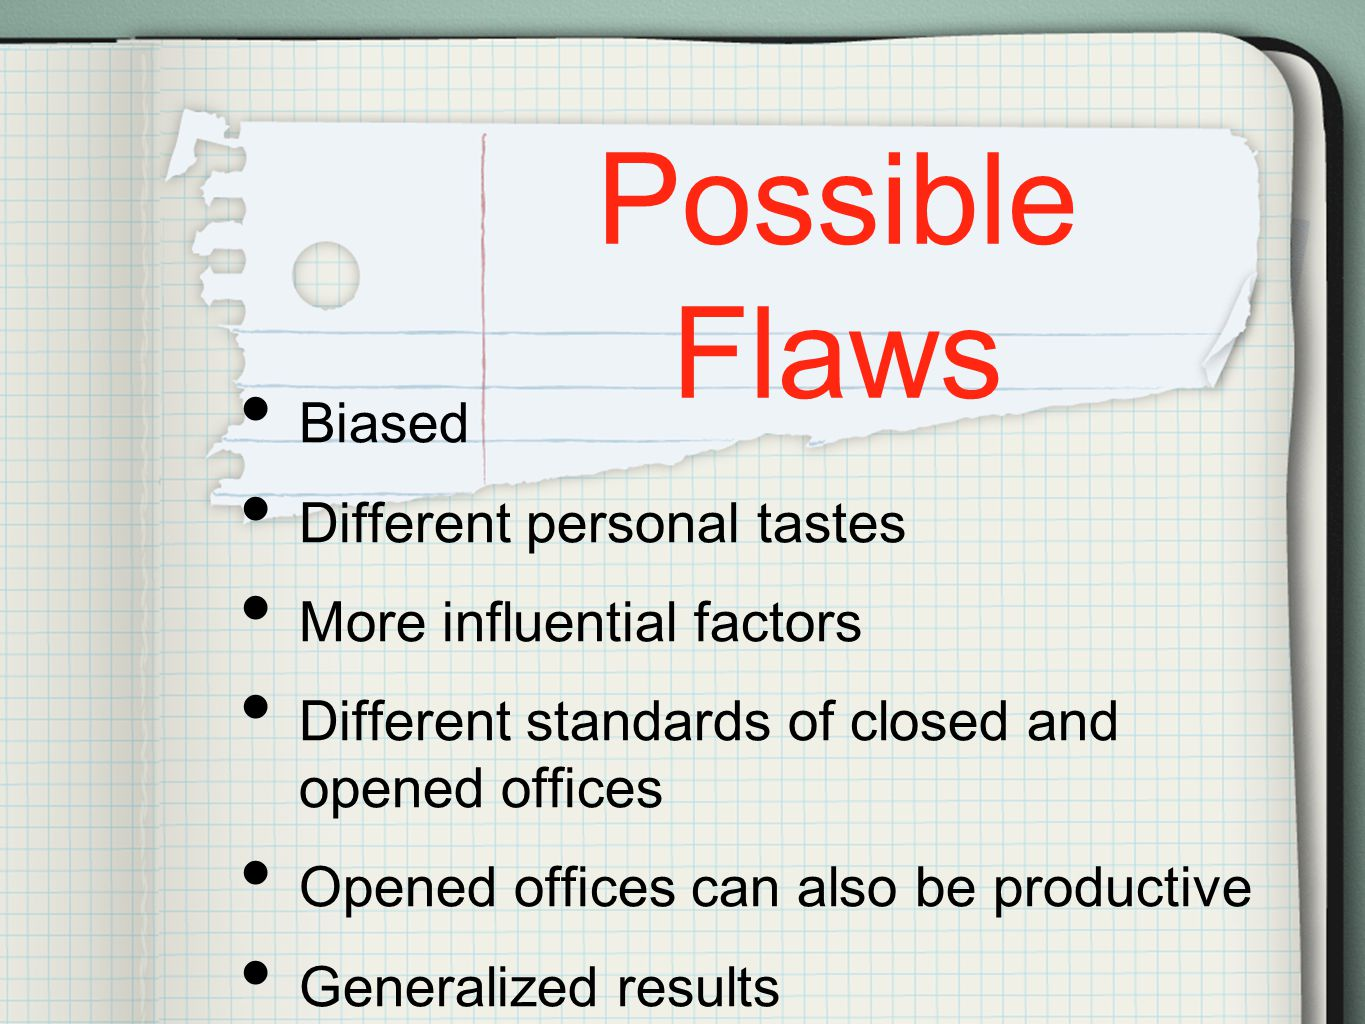 Possible Flaws Biased Different personal tastes More influential factors Different standards of closed and opened offices Opened offices can also be productive Generalized results